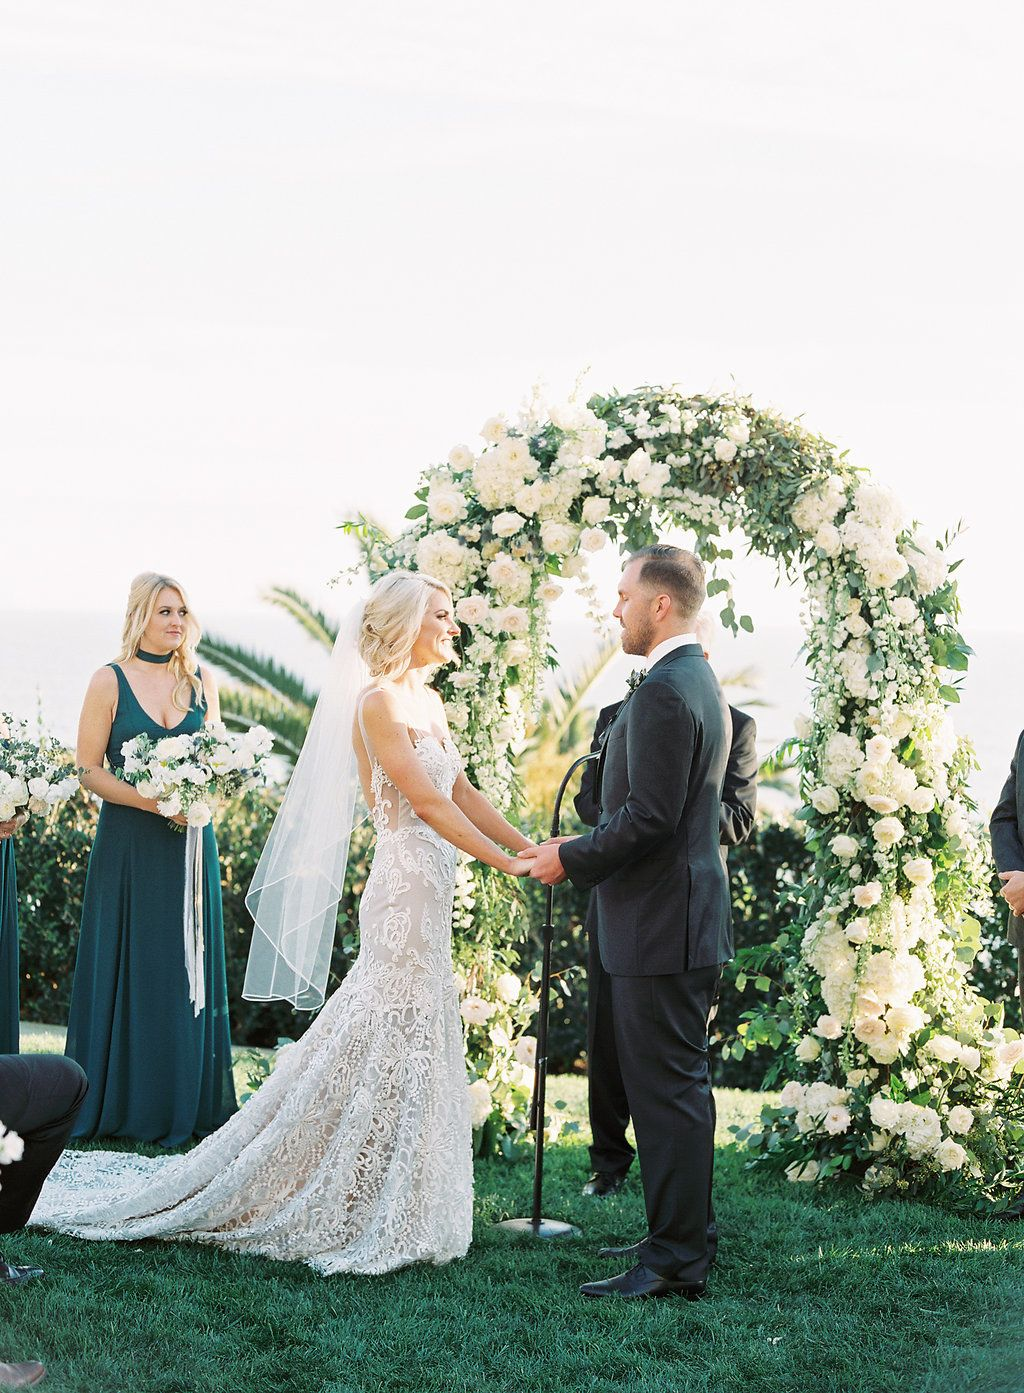 Coastal 'Something Blue' Pacific Palisades Wedding at Bel